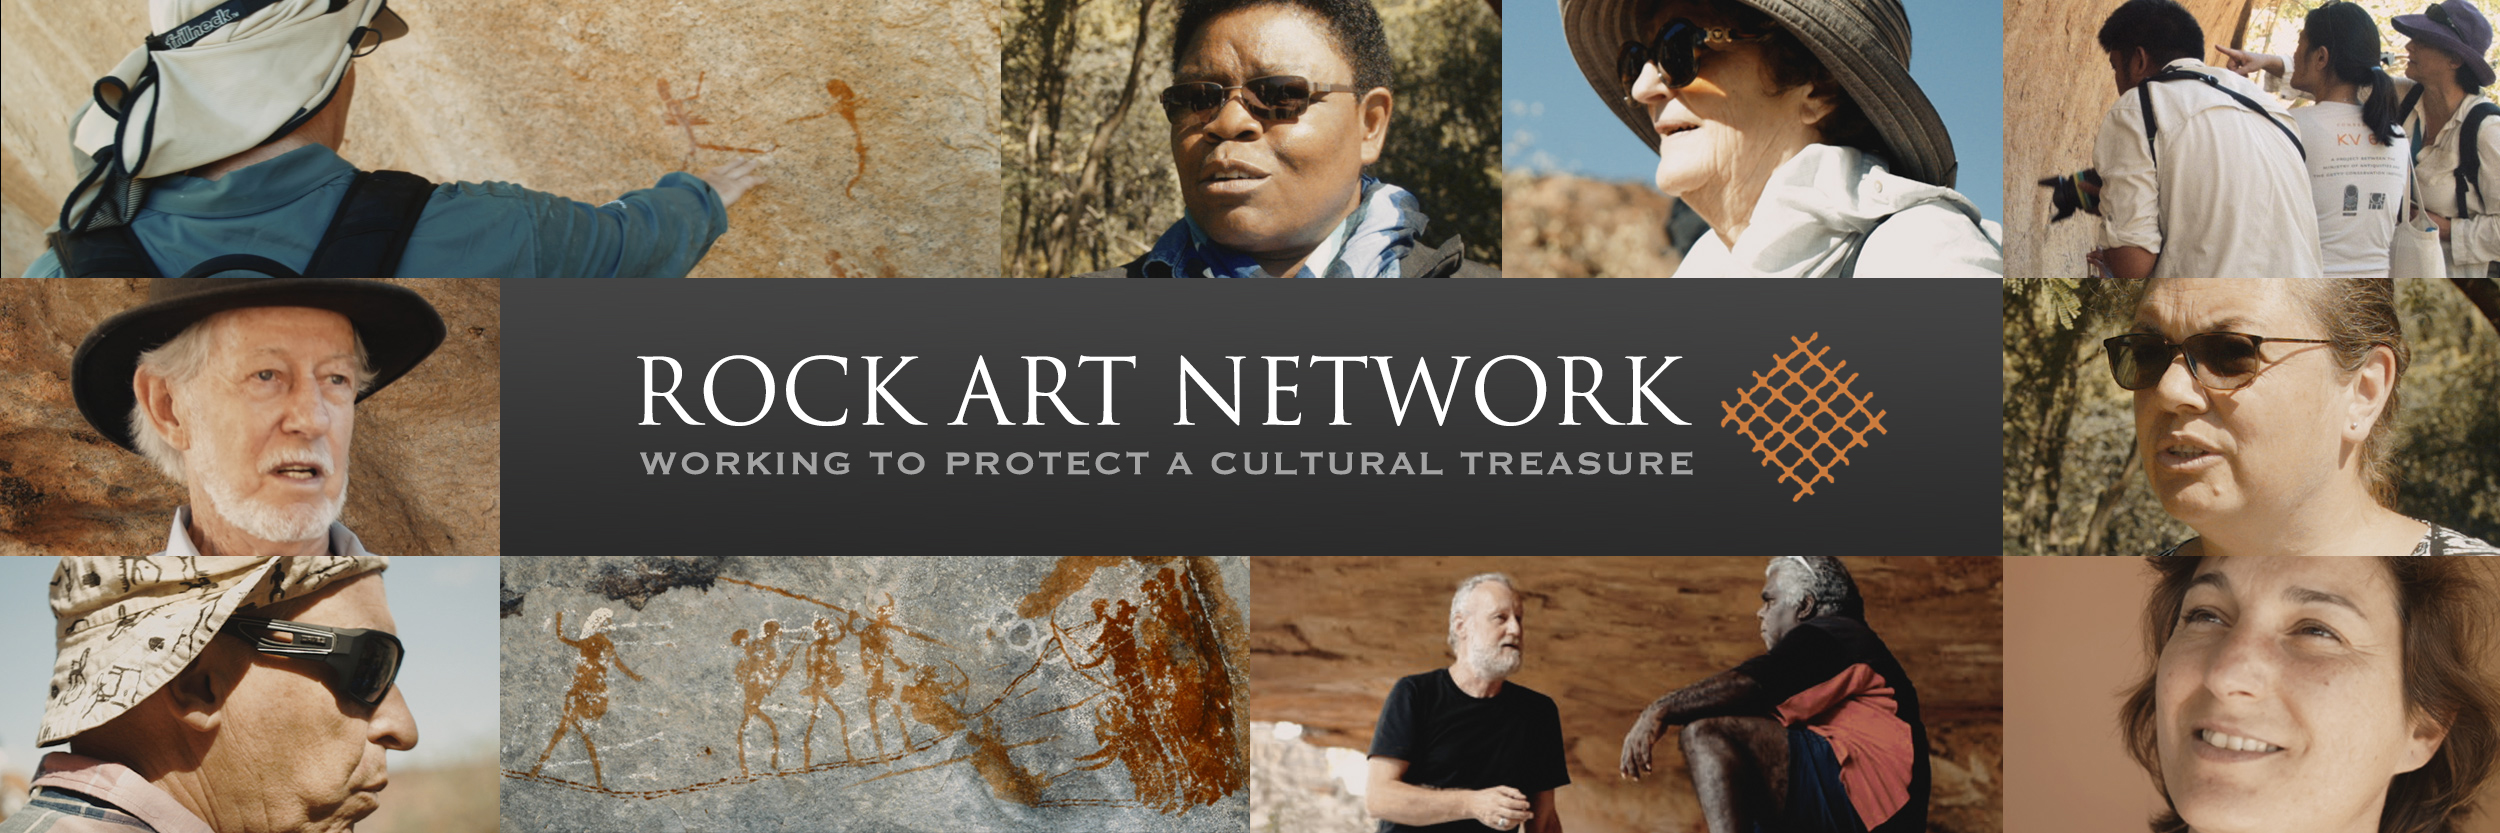 Bradshaw Foundation Rock Art Network Getty Conservation Institute